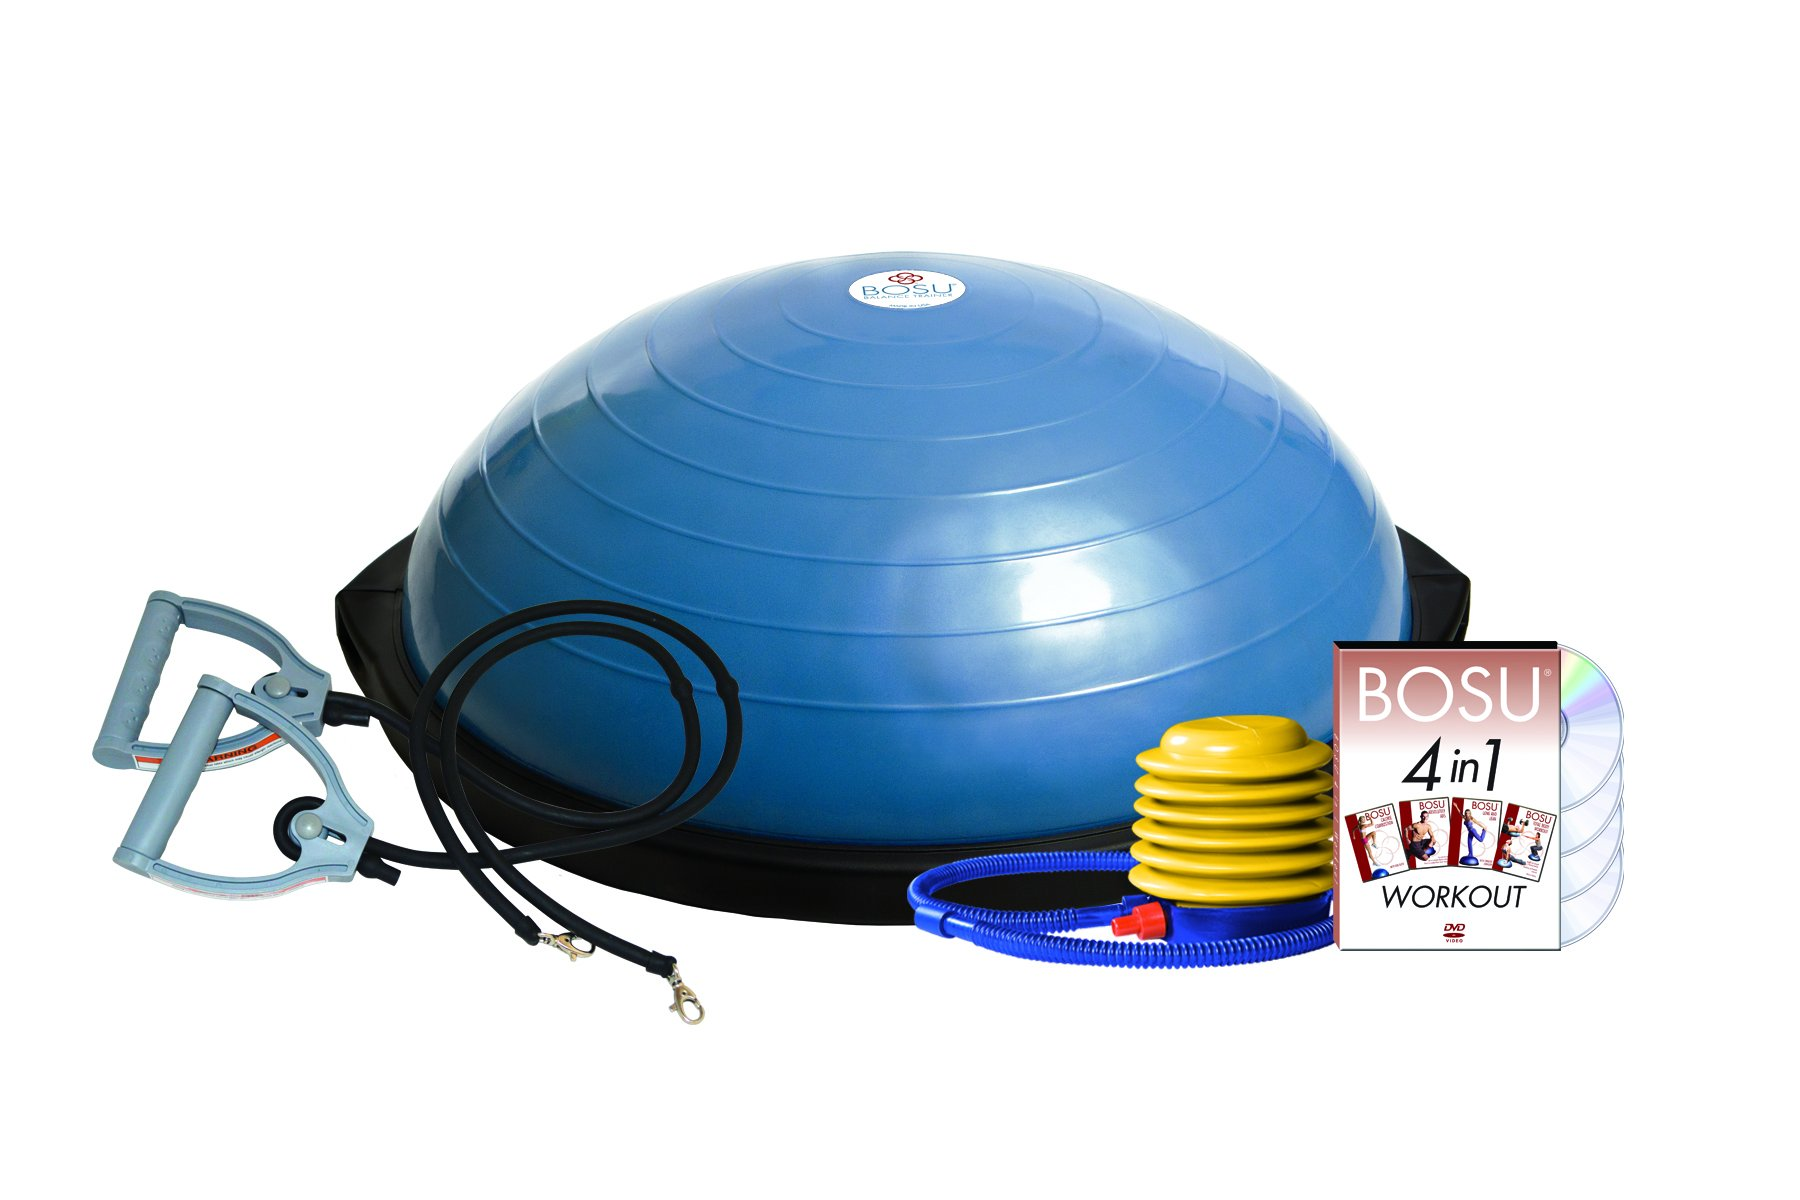 Bosu Balance Trainer with Resistance Bands by Bosu